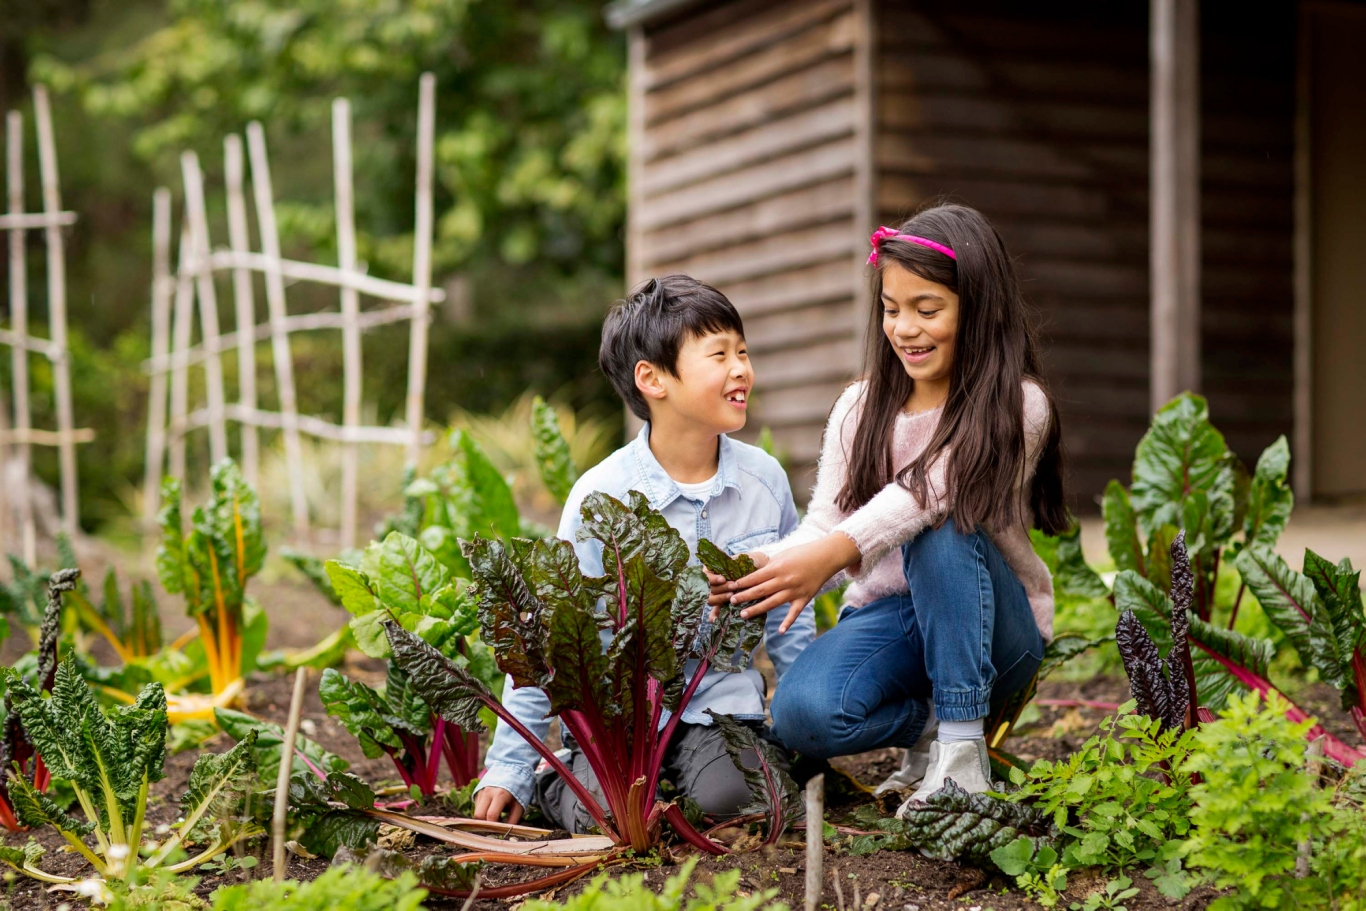 Two children crouching down among vegetables in the kitchen garden.